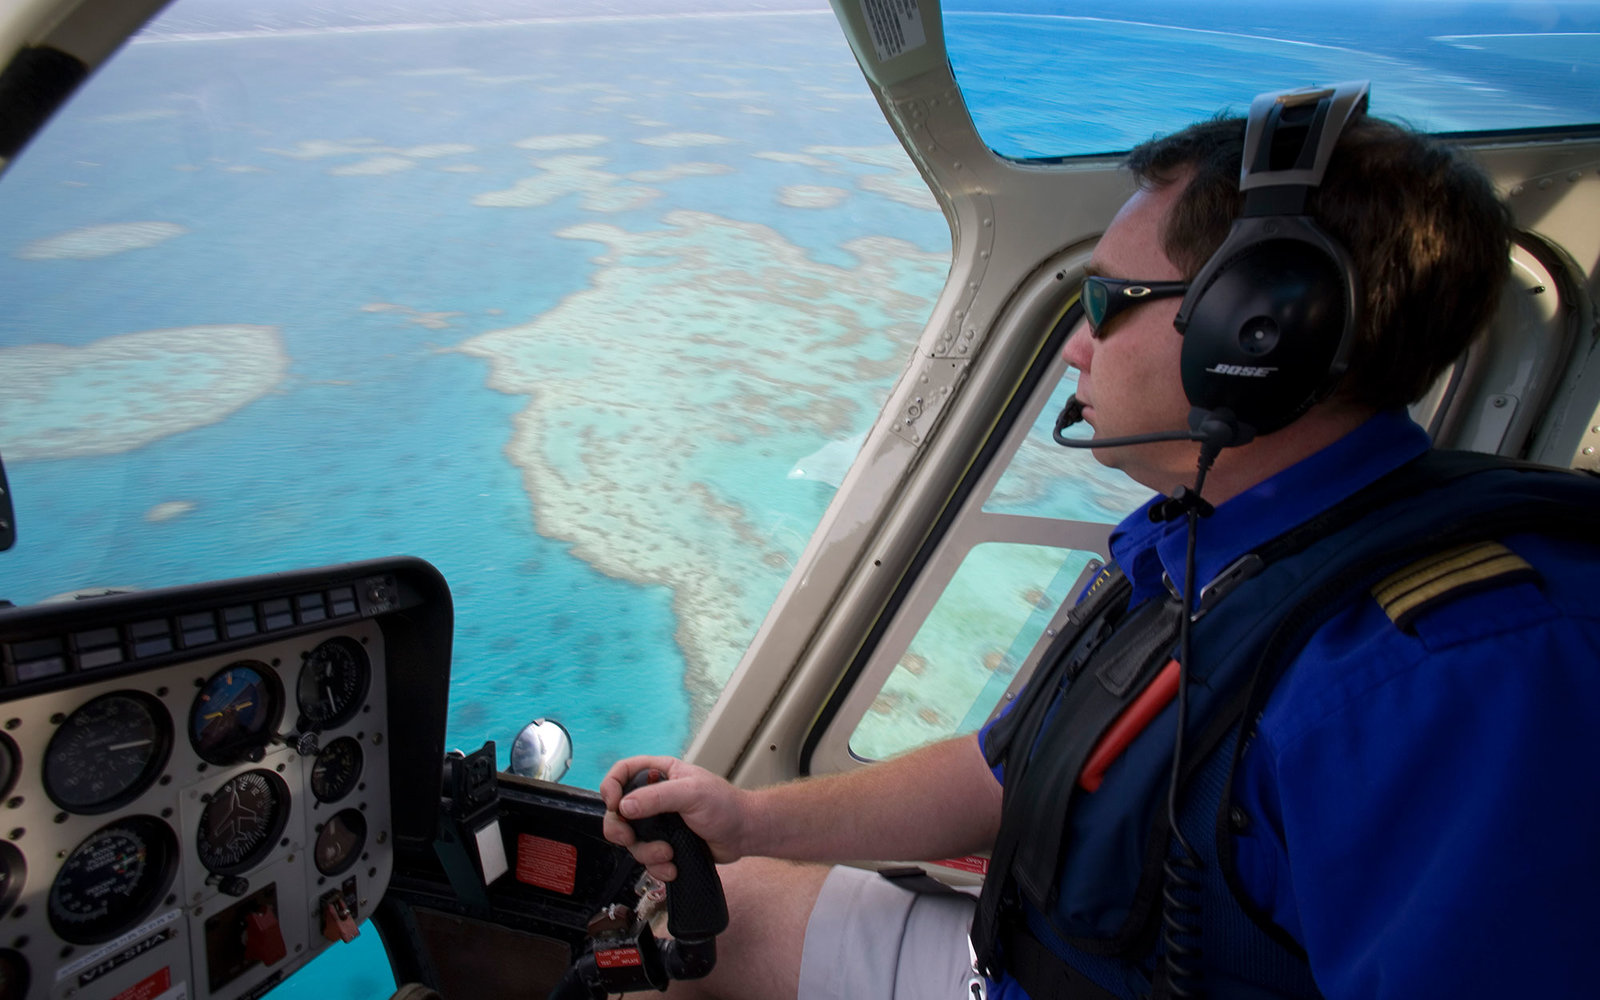 Australia, Great Barrier Reef. Helicopter flight over Hardy Reef near the Whitsunday Islands.